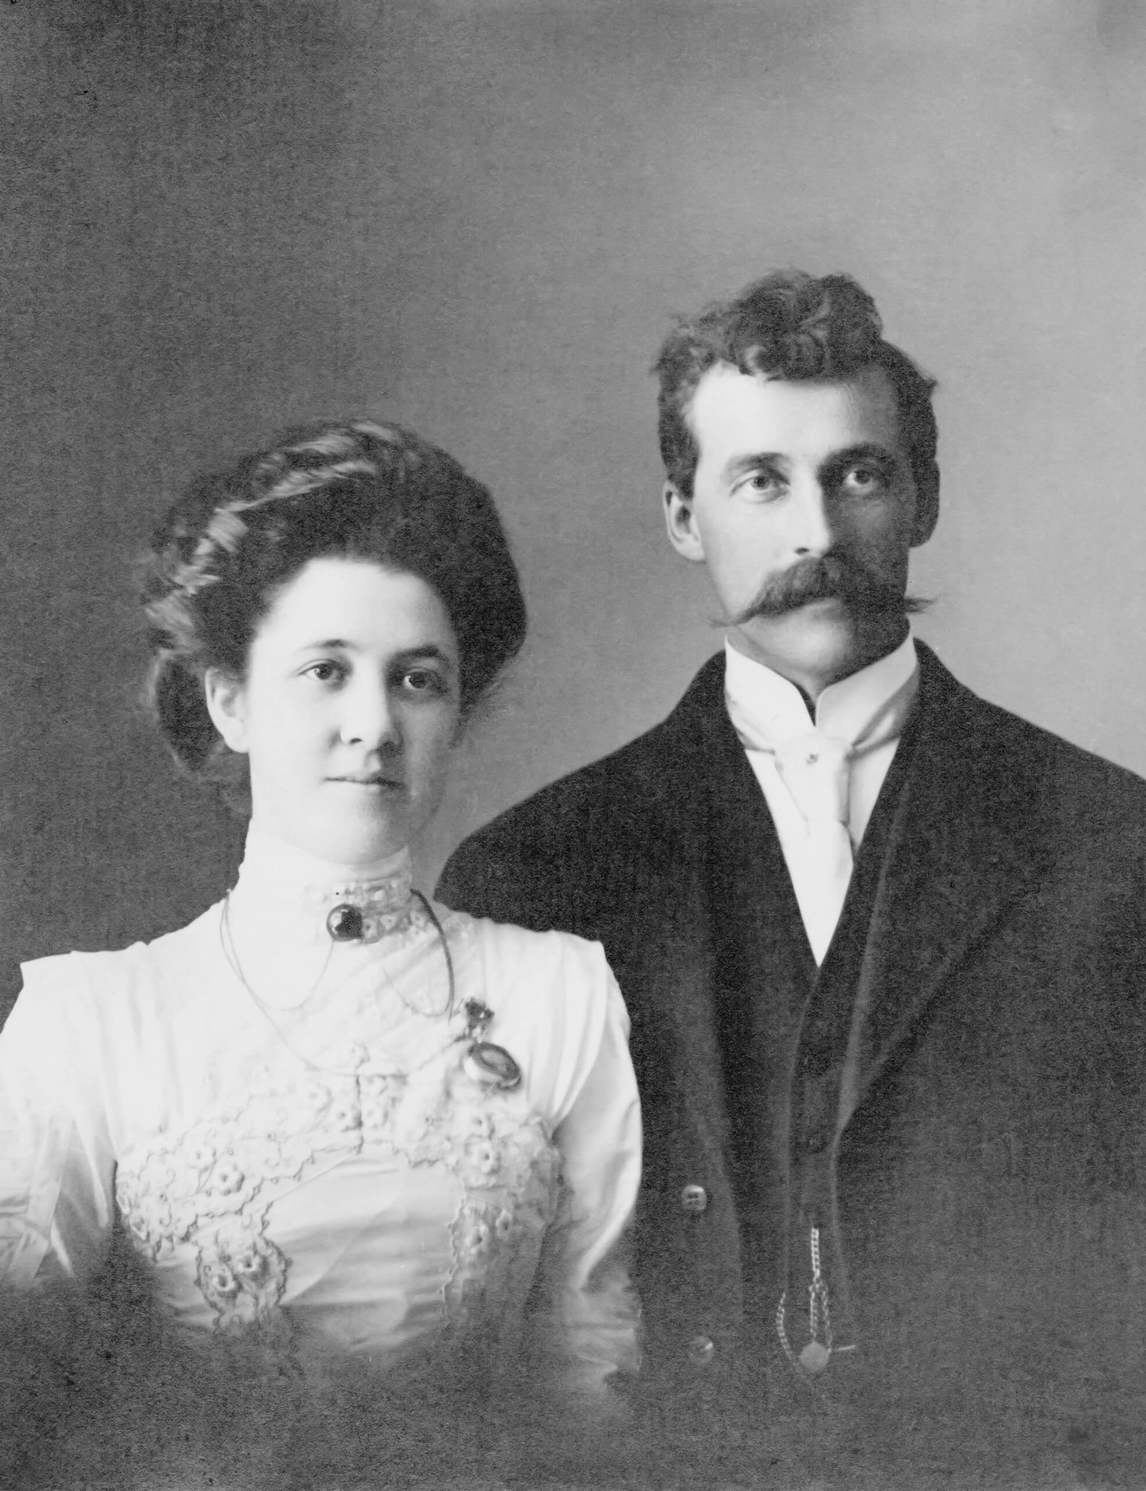 Art Canada Institute, photograph of Belle Hicks and Lionel Henry FitzGerald, c. 1890